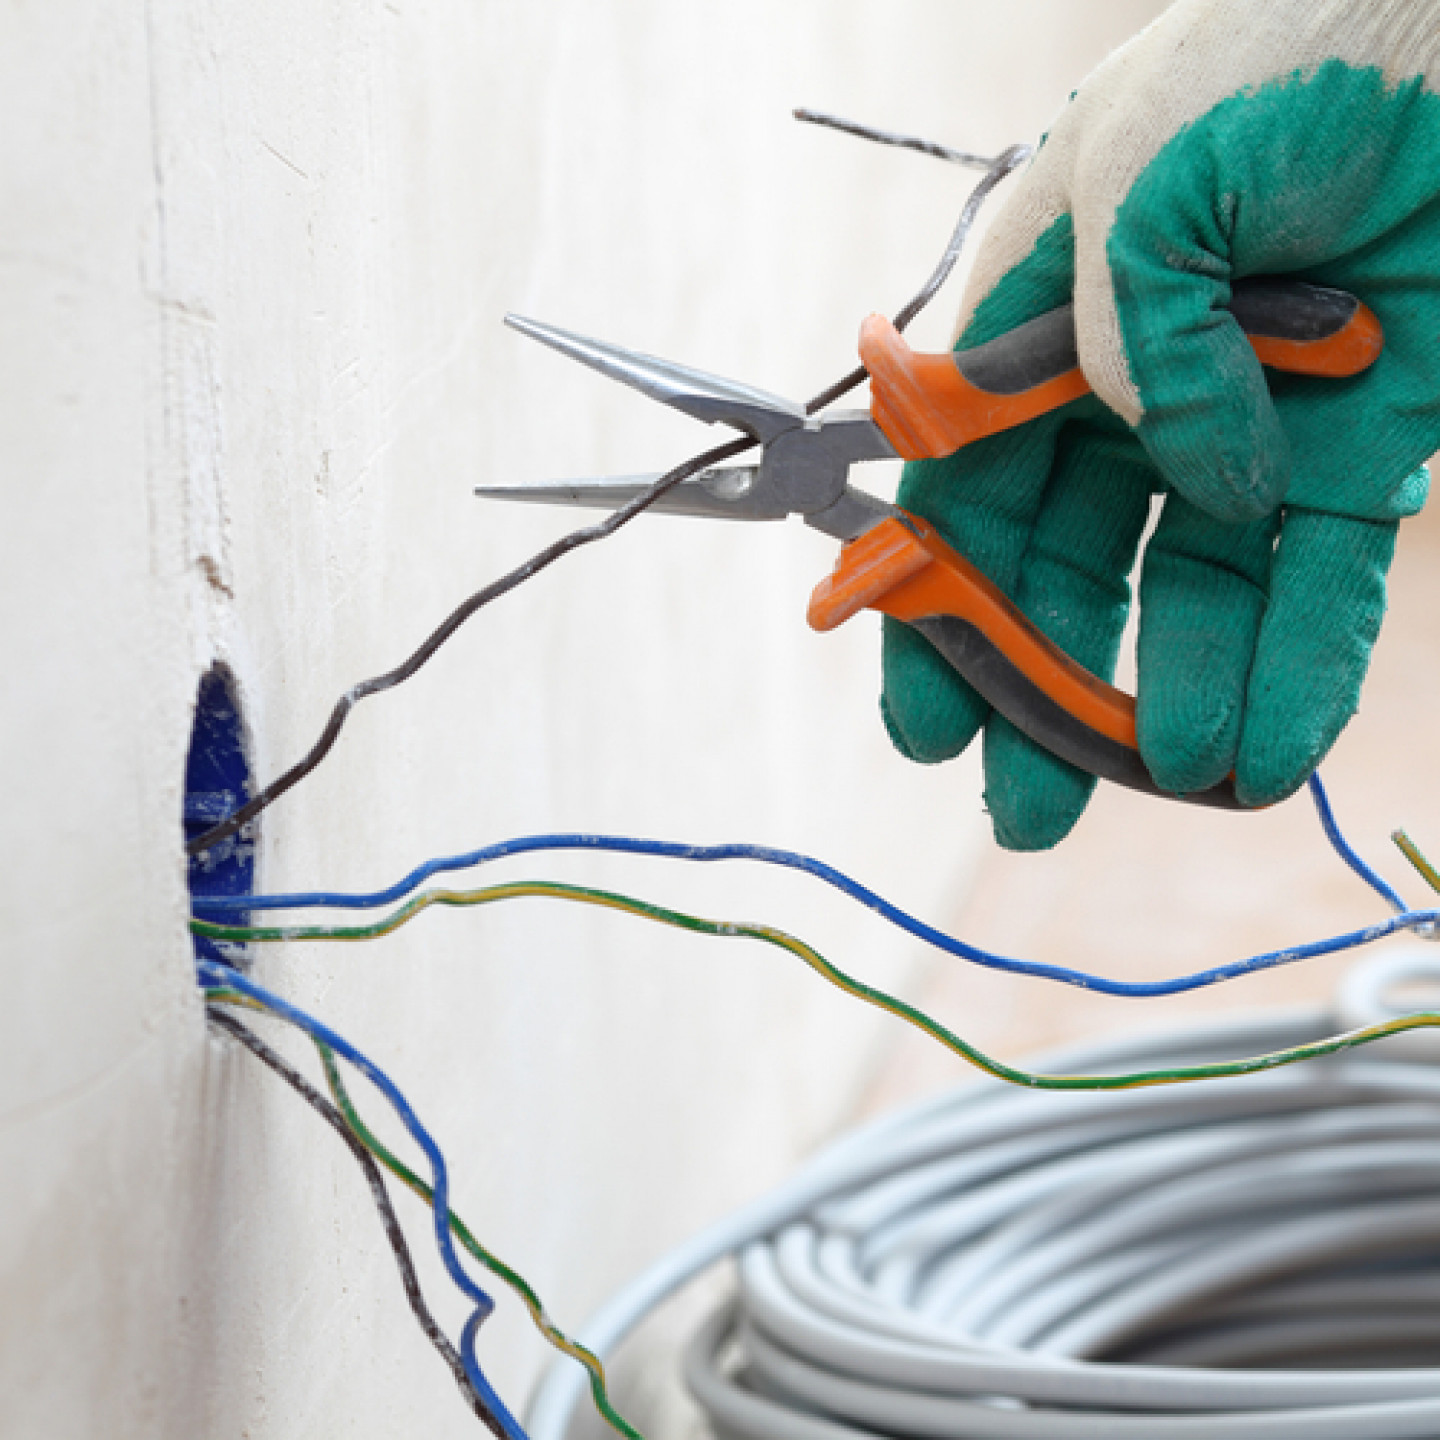 When should you get electrical installation services?